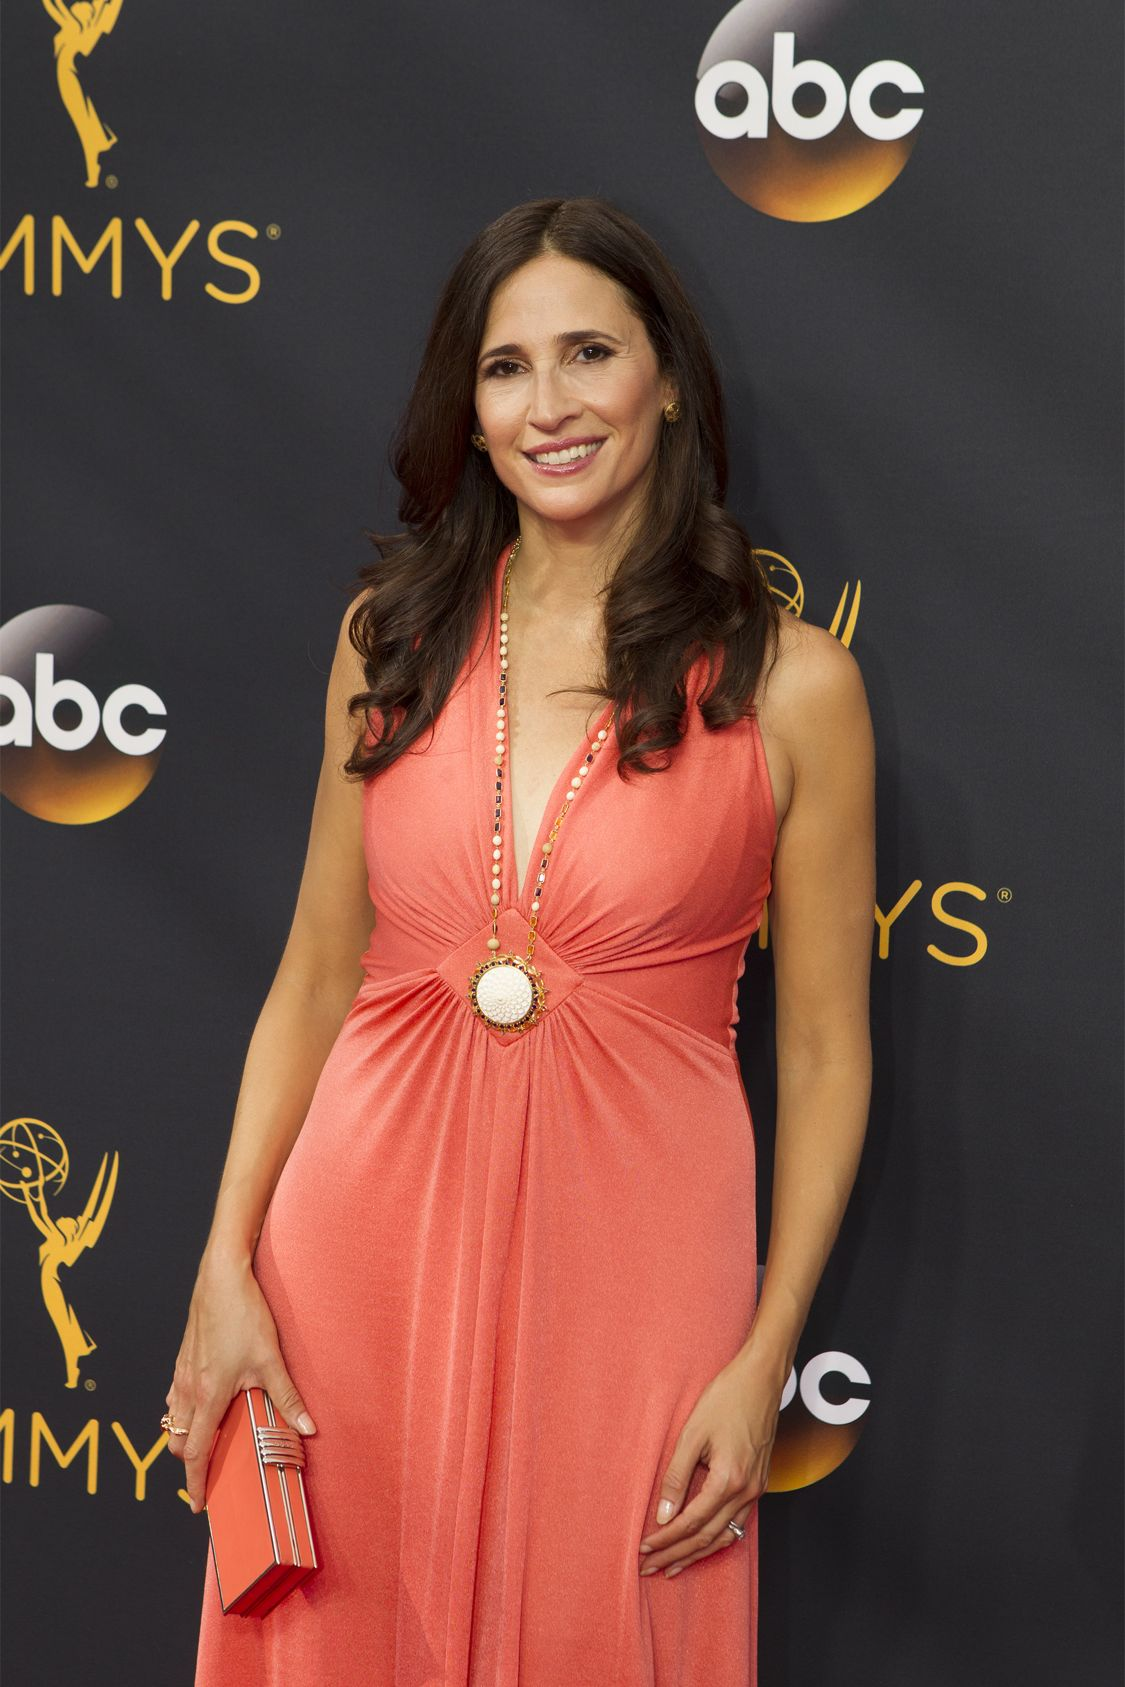 """THE 68TH EMMY(r) AWARDS - """"The 68th Emmy Awards"""" broadcasts live from The Microsoft Theater in Los Angeles, Sunday, September 18 (7:00-11:00 p.m. EDT/4:00-8:00 p.m. PDT), on ABC and is hosted by Jimmy Kimmel. (ABC/Rick Rowell) MICHAELA WATKINS"""